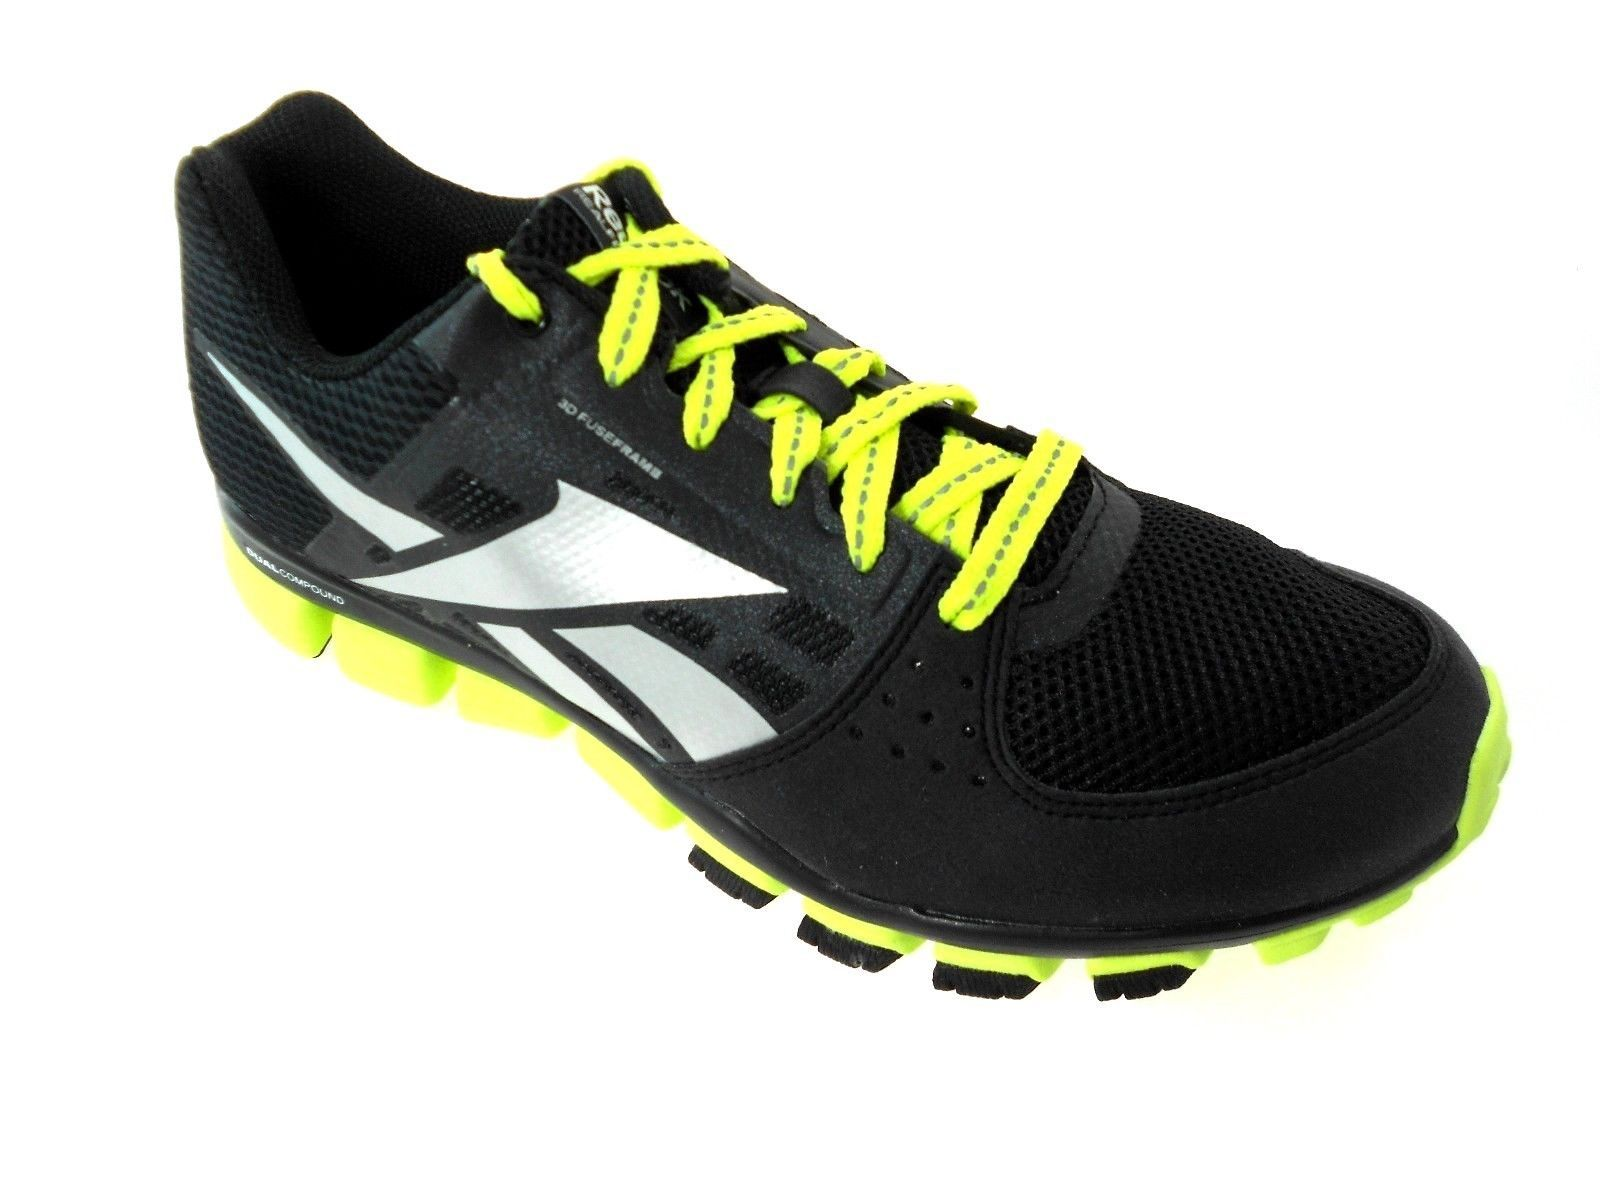 REEBOK TRANSITION 4.0 V47764 BLACK/YELLOW/SILVER RUNNING SHOES YOUTH SIZE 7Y - $37.49